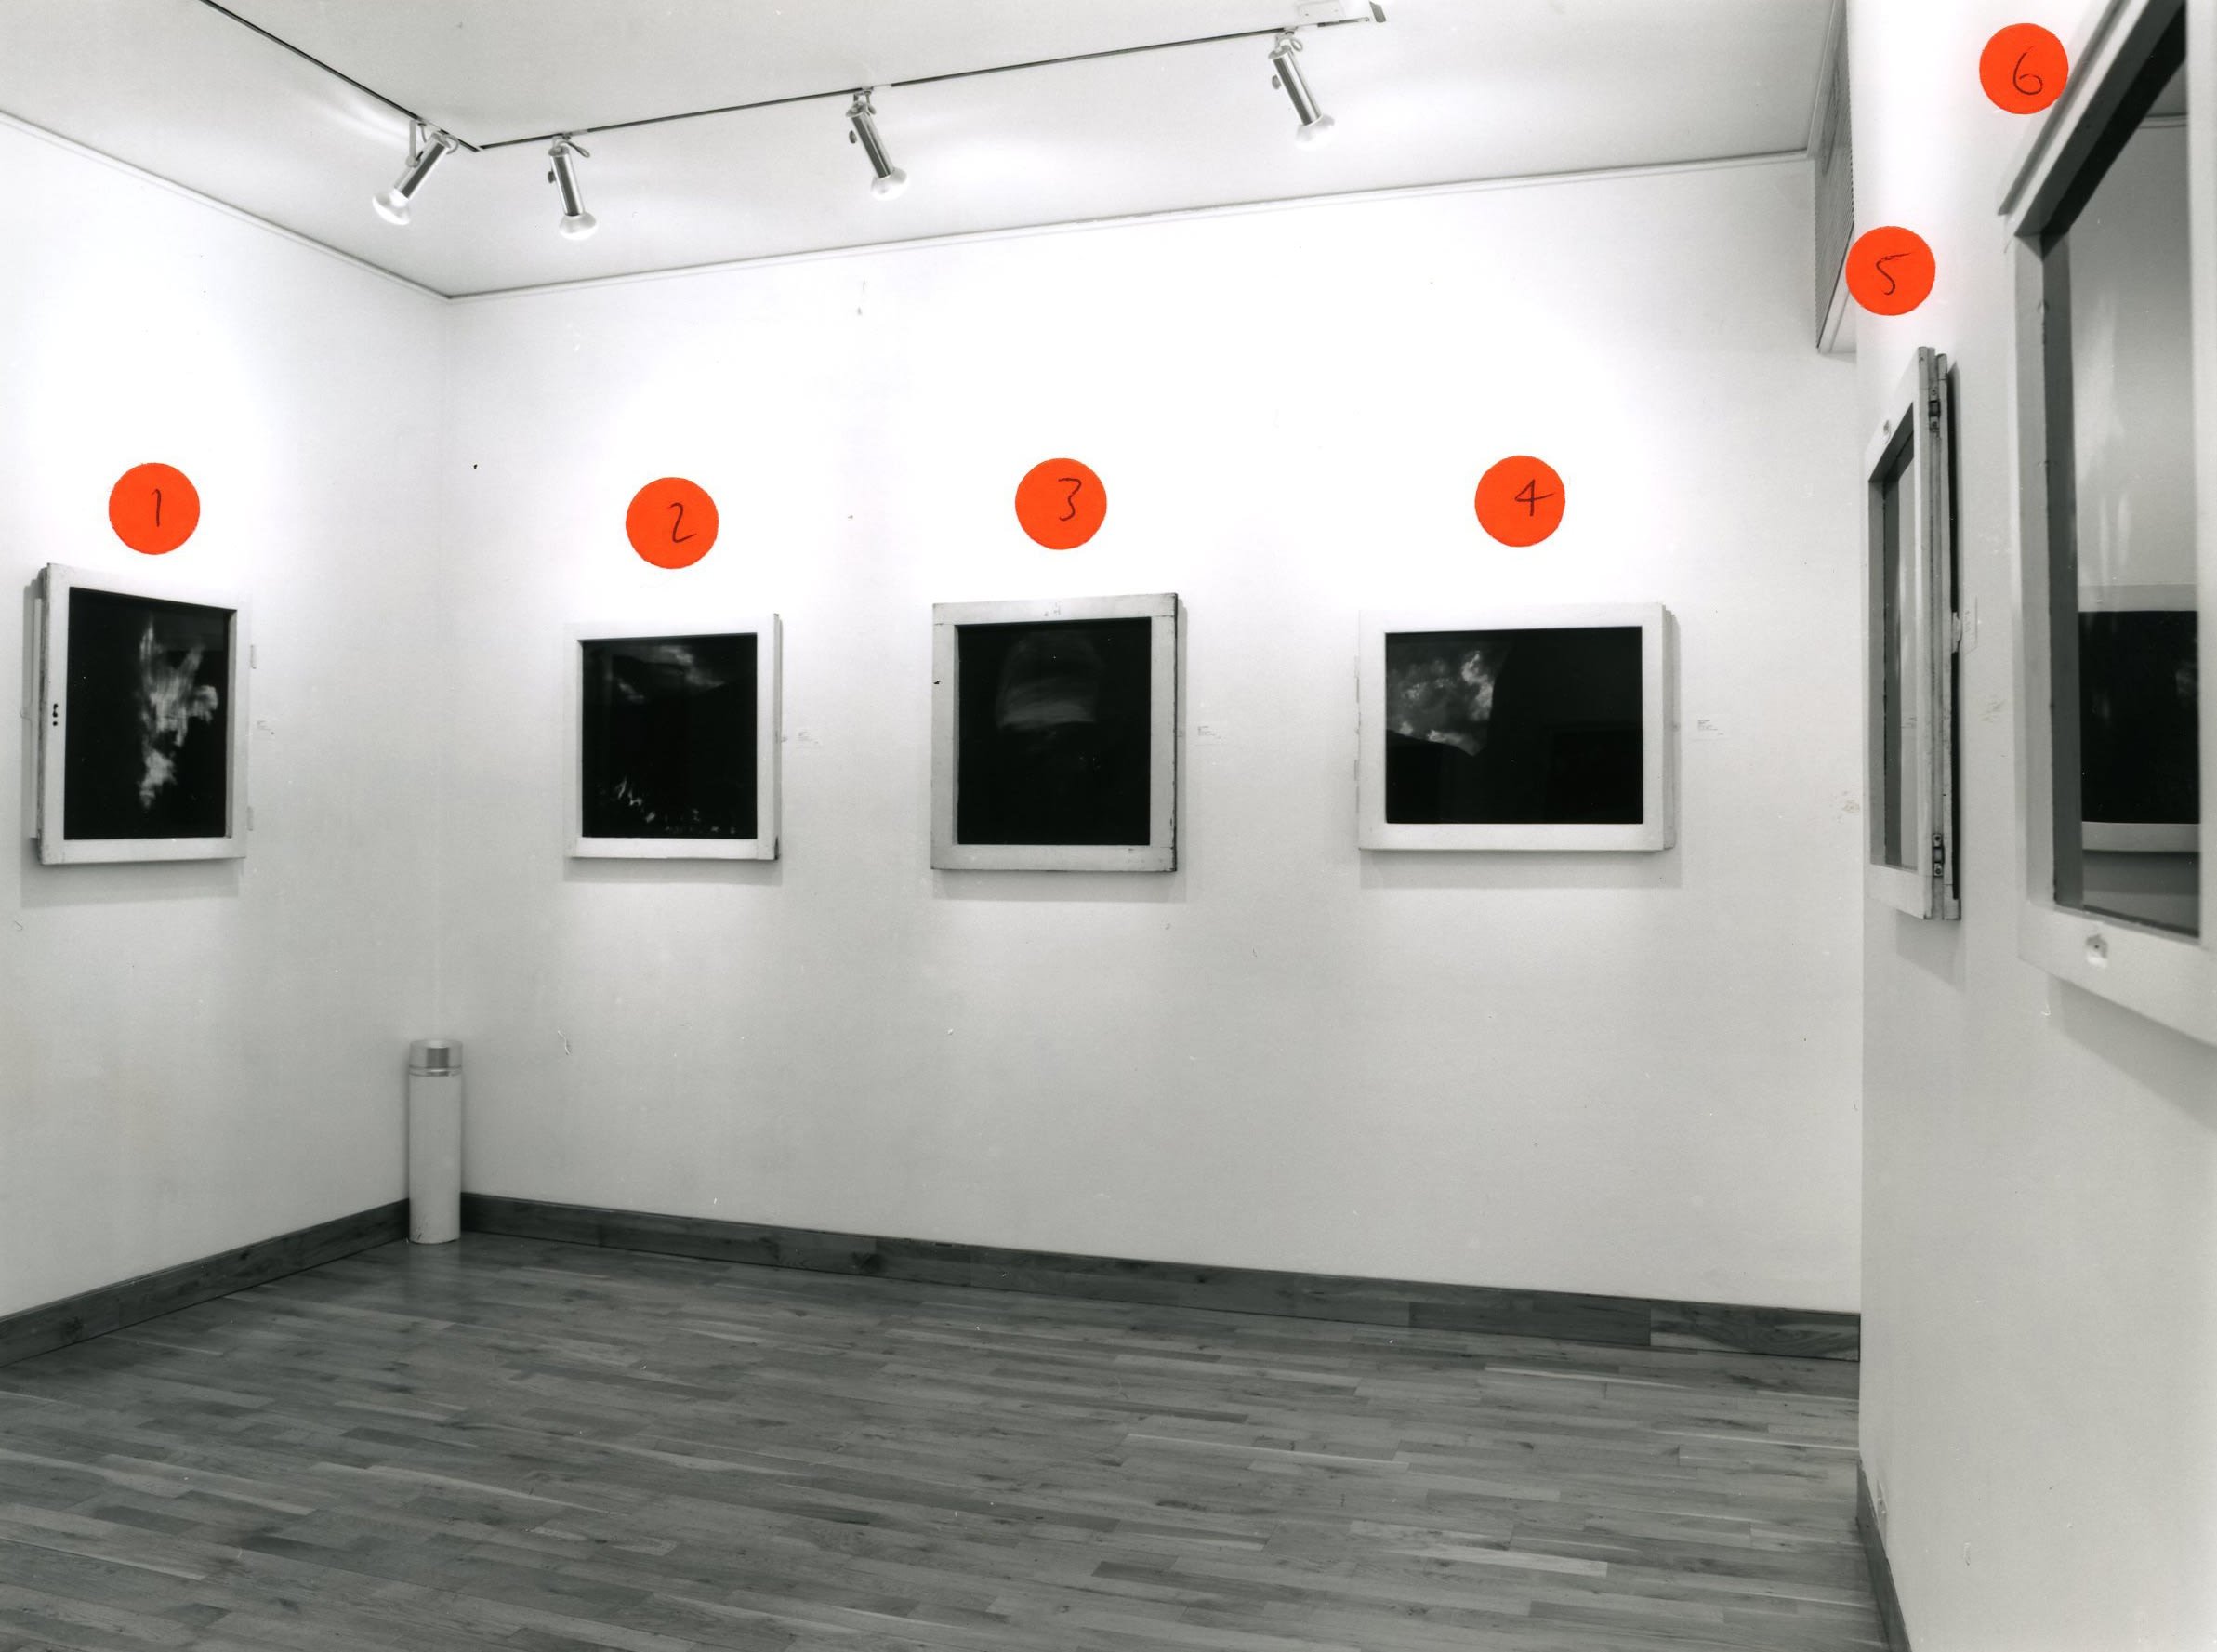 """<span class=""""link fancybox-details-link""""><a href=""""/exhibitions/173/works/image_standalone777/"""">View Detail Page</a></span><p>BEN KADISHMAN   PAINTINGS 1993 - 1998   29 JAN - 13 MAR 1998   Installation View</p>"""